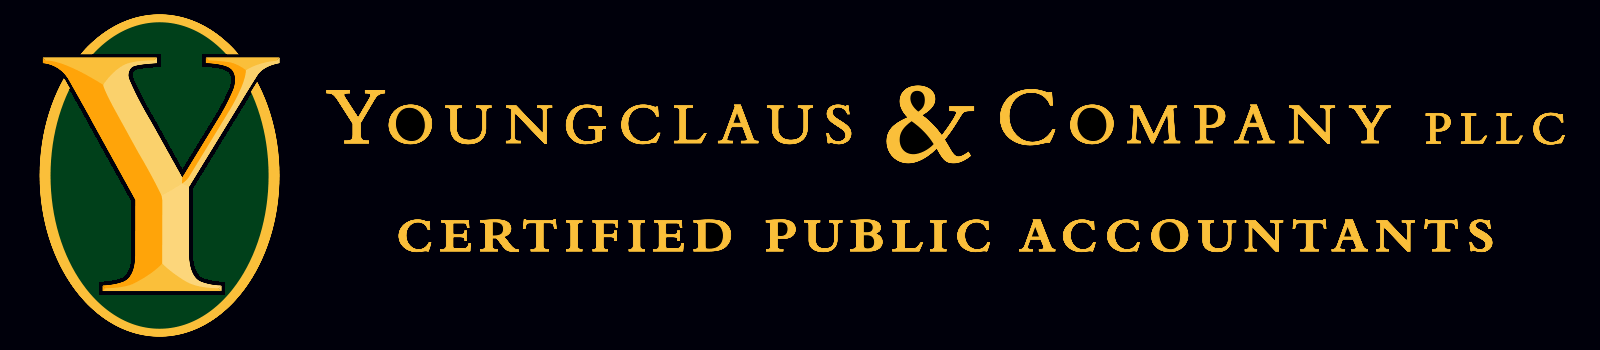 Youngclaus & Company Certified Public Accountants in New Hampshire